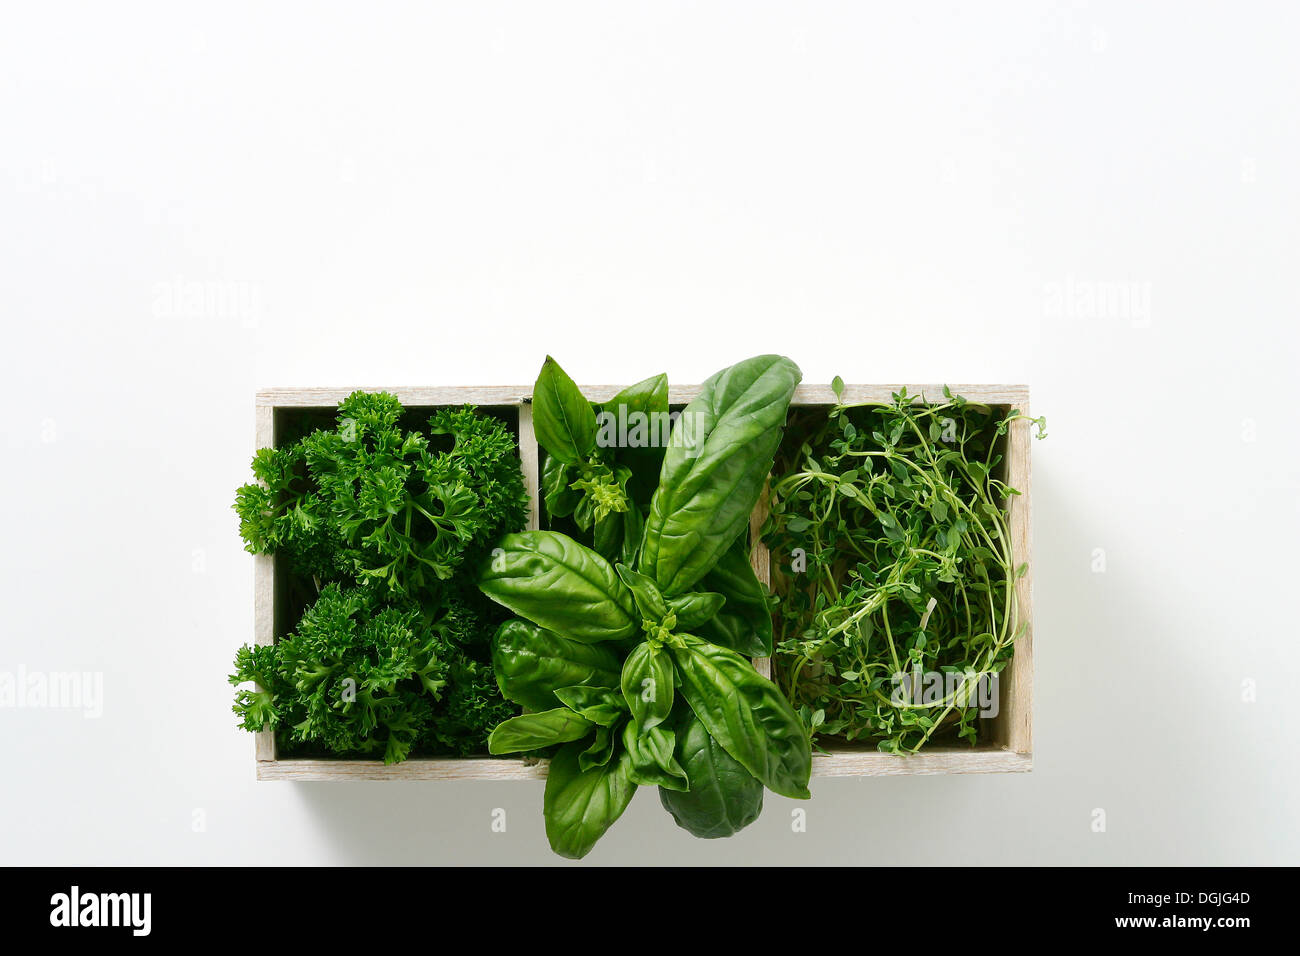 Window box of growing salad leaves - Stock Image